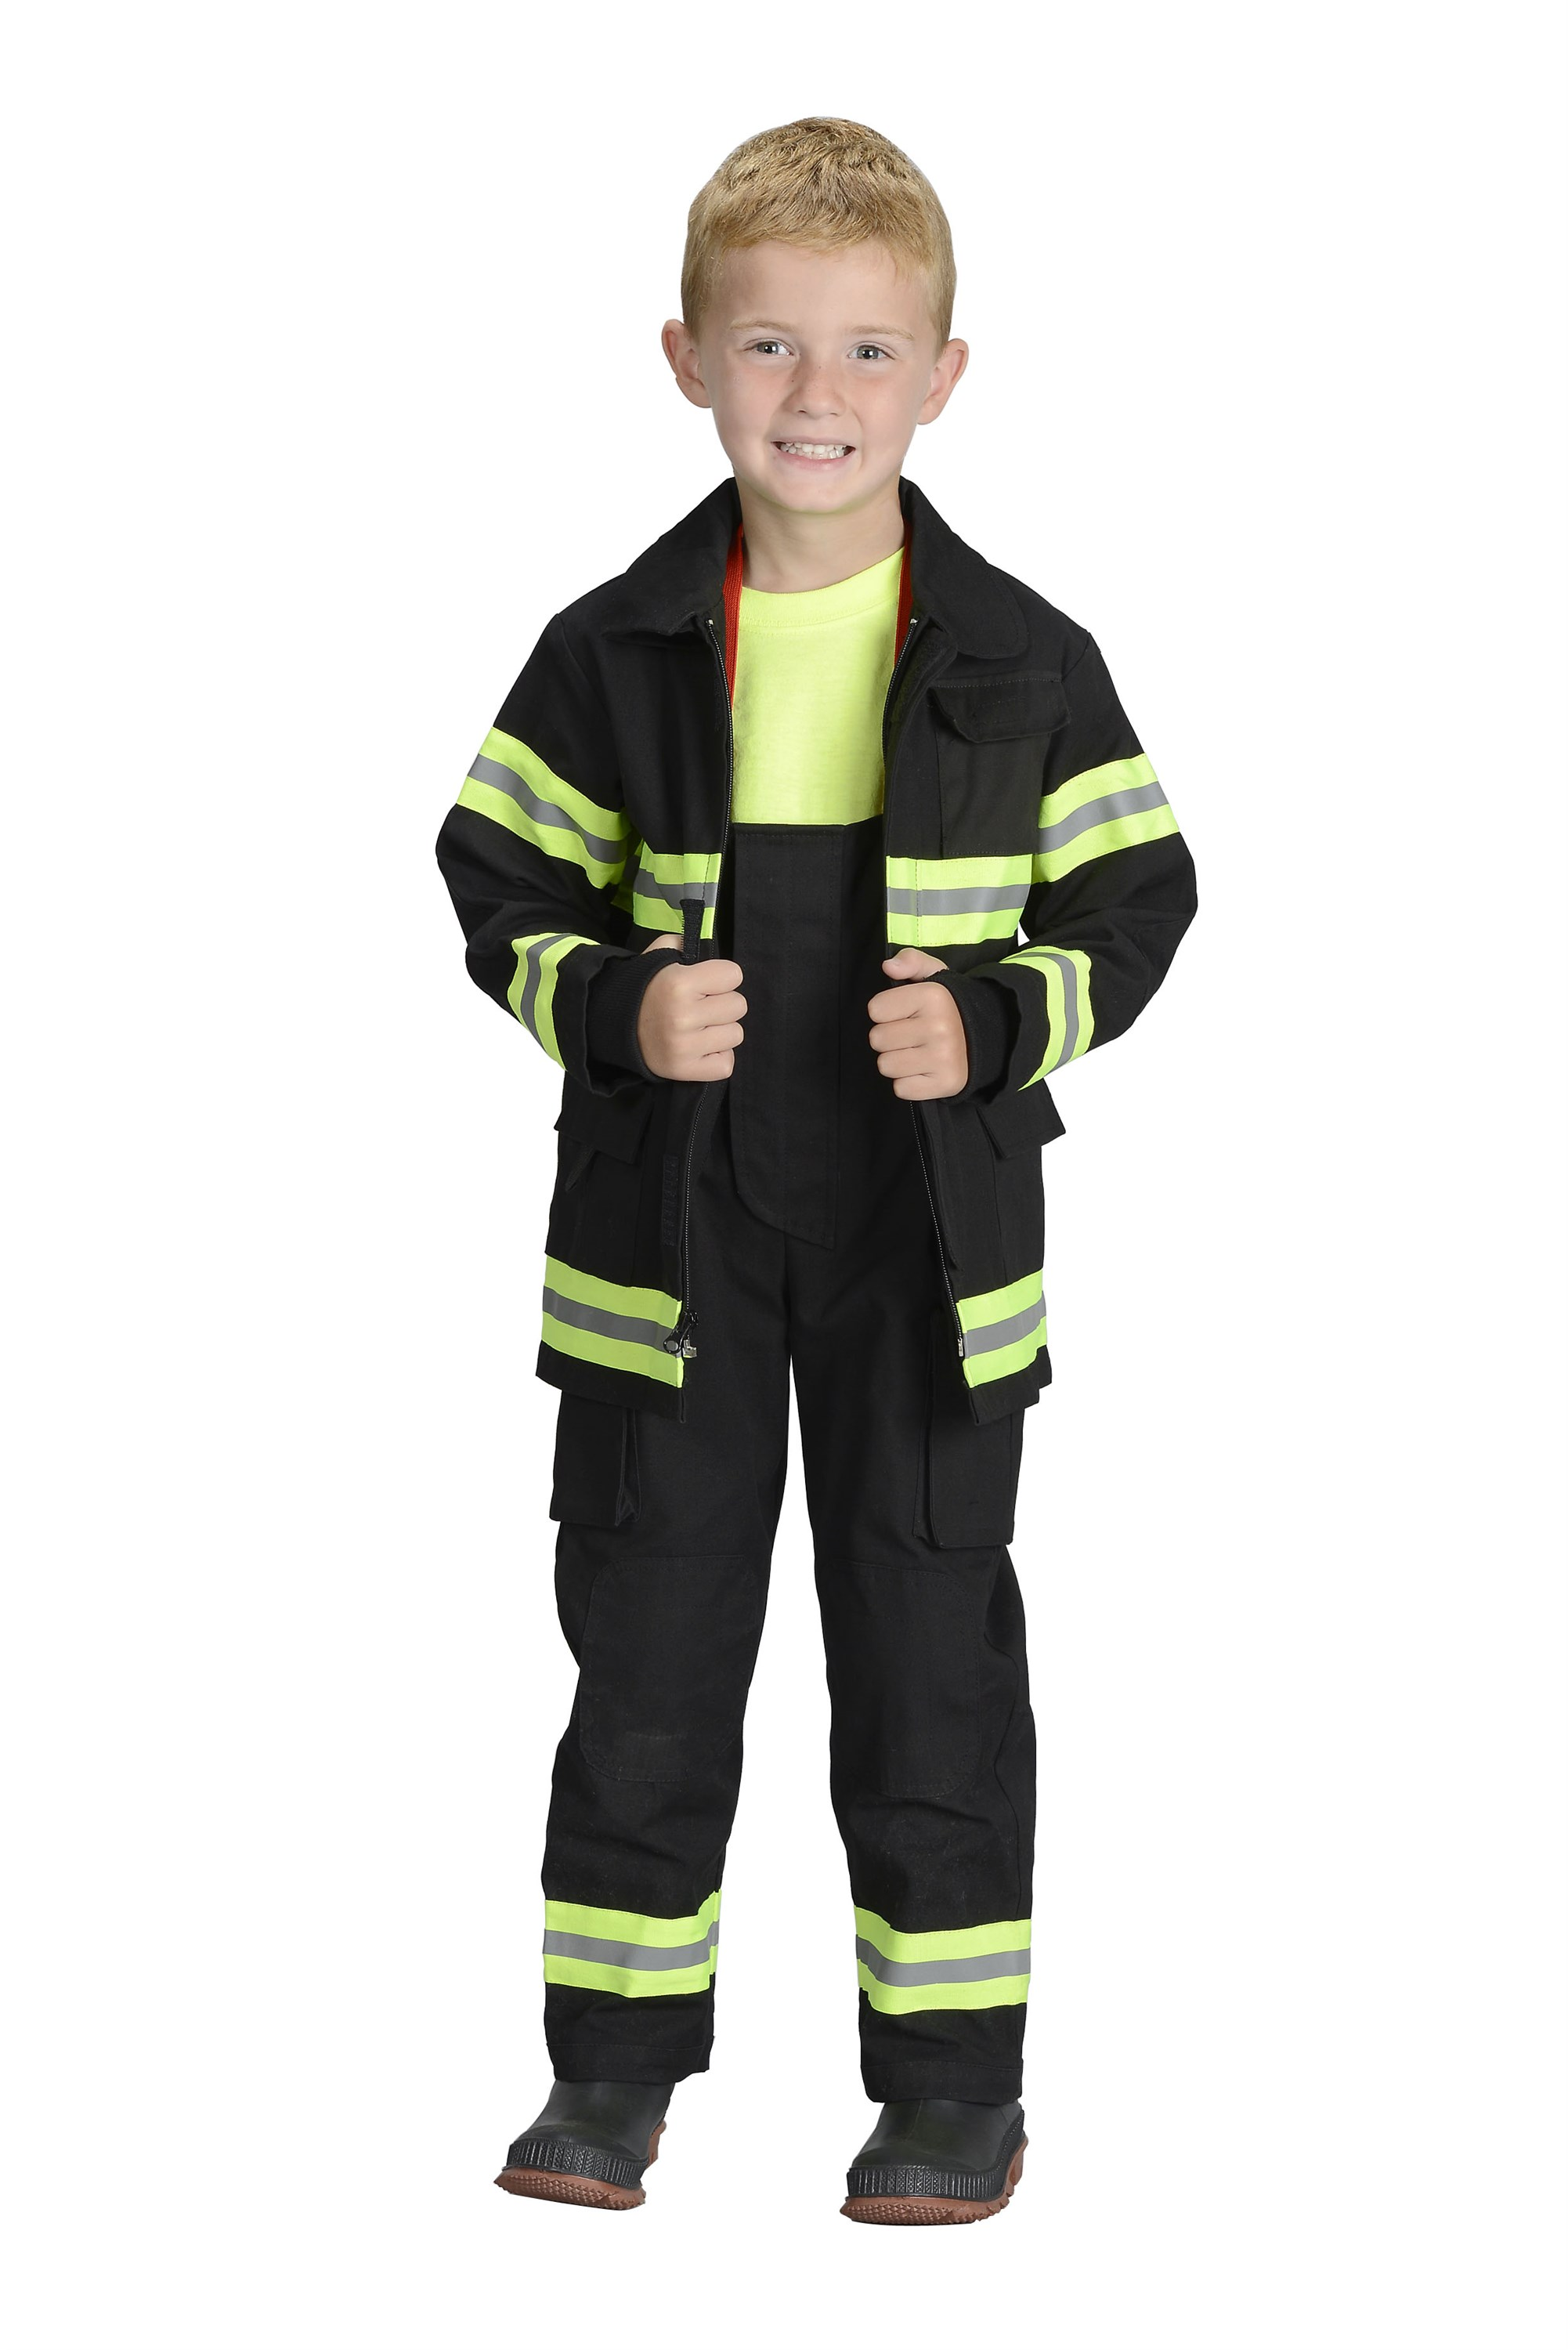 Jr. Firefighter Suit LOS ANGELES In Tan or Black by Aeromax